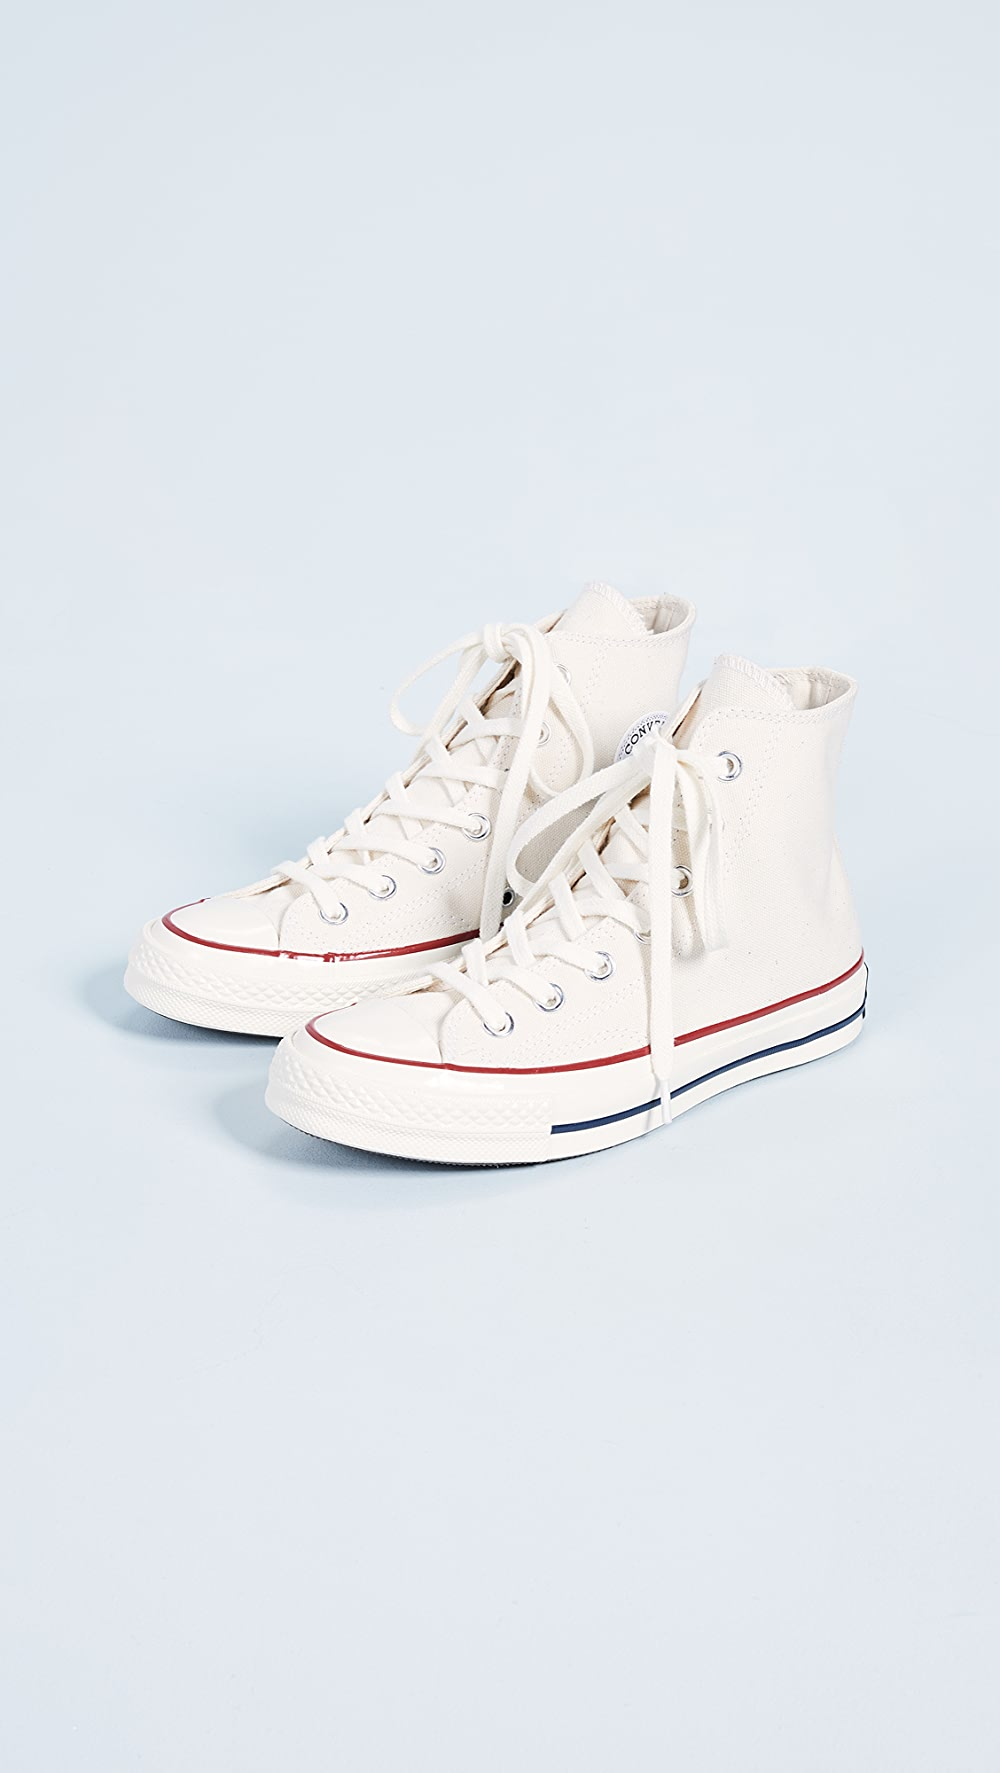 Active Converse - All Star '70s High Top Sneakers With The Best Service